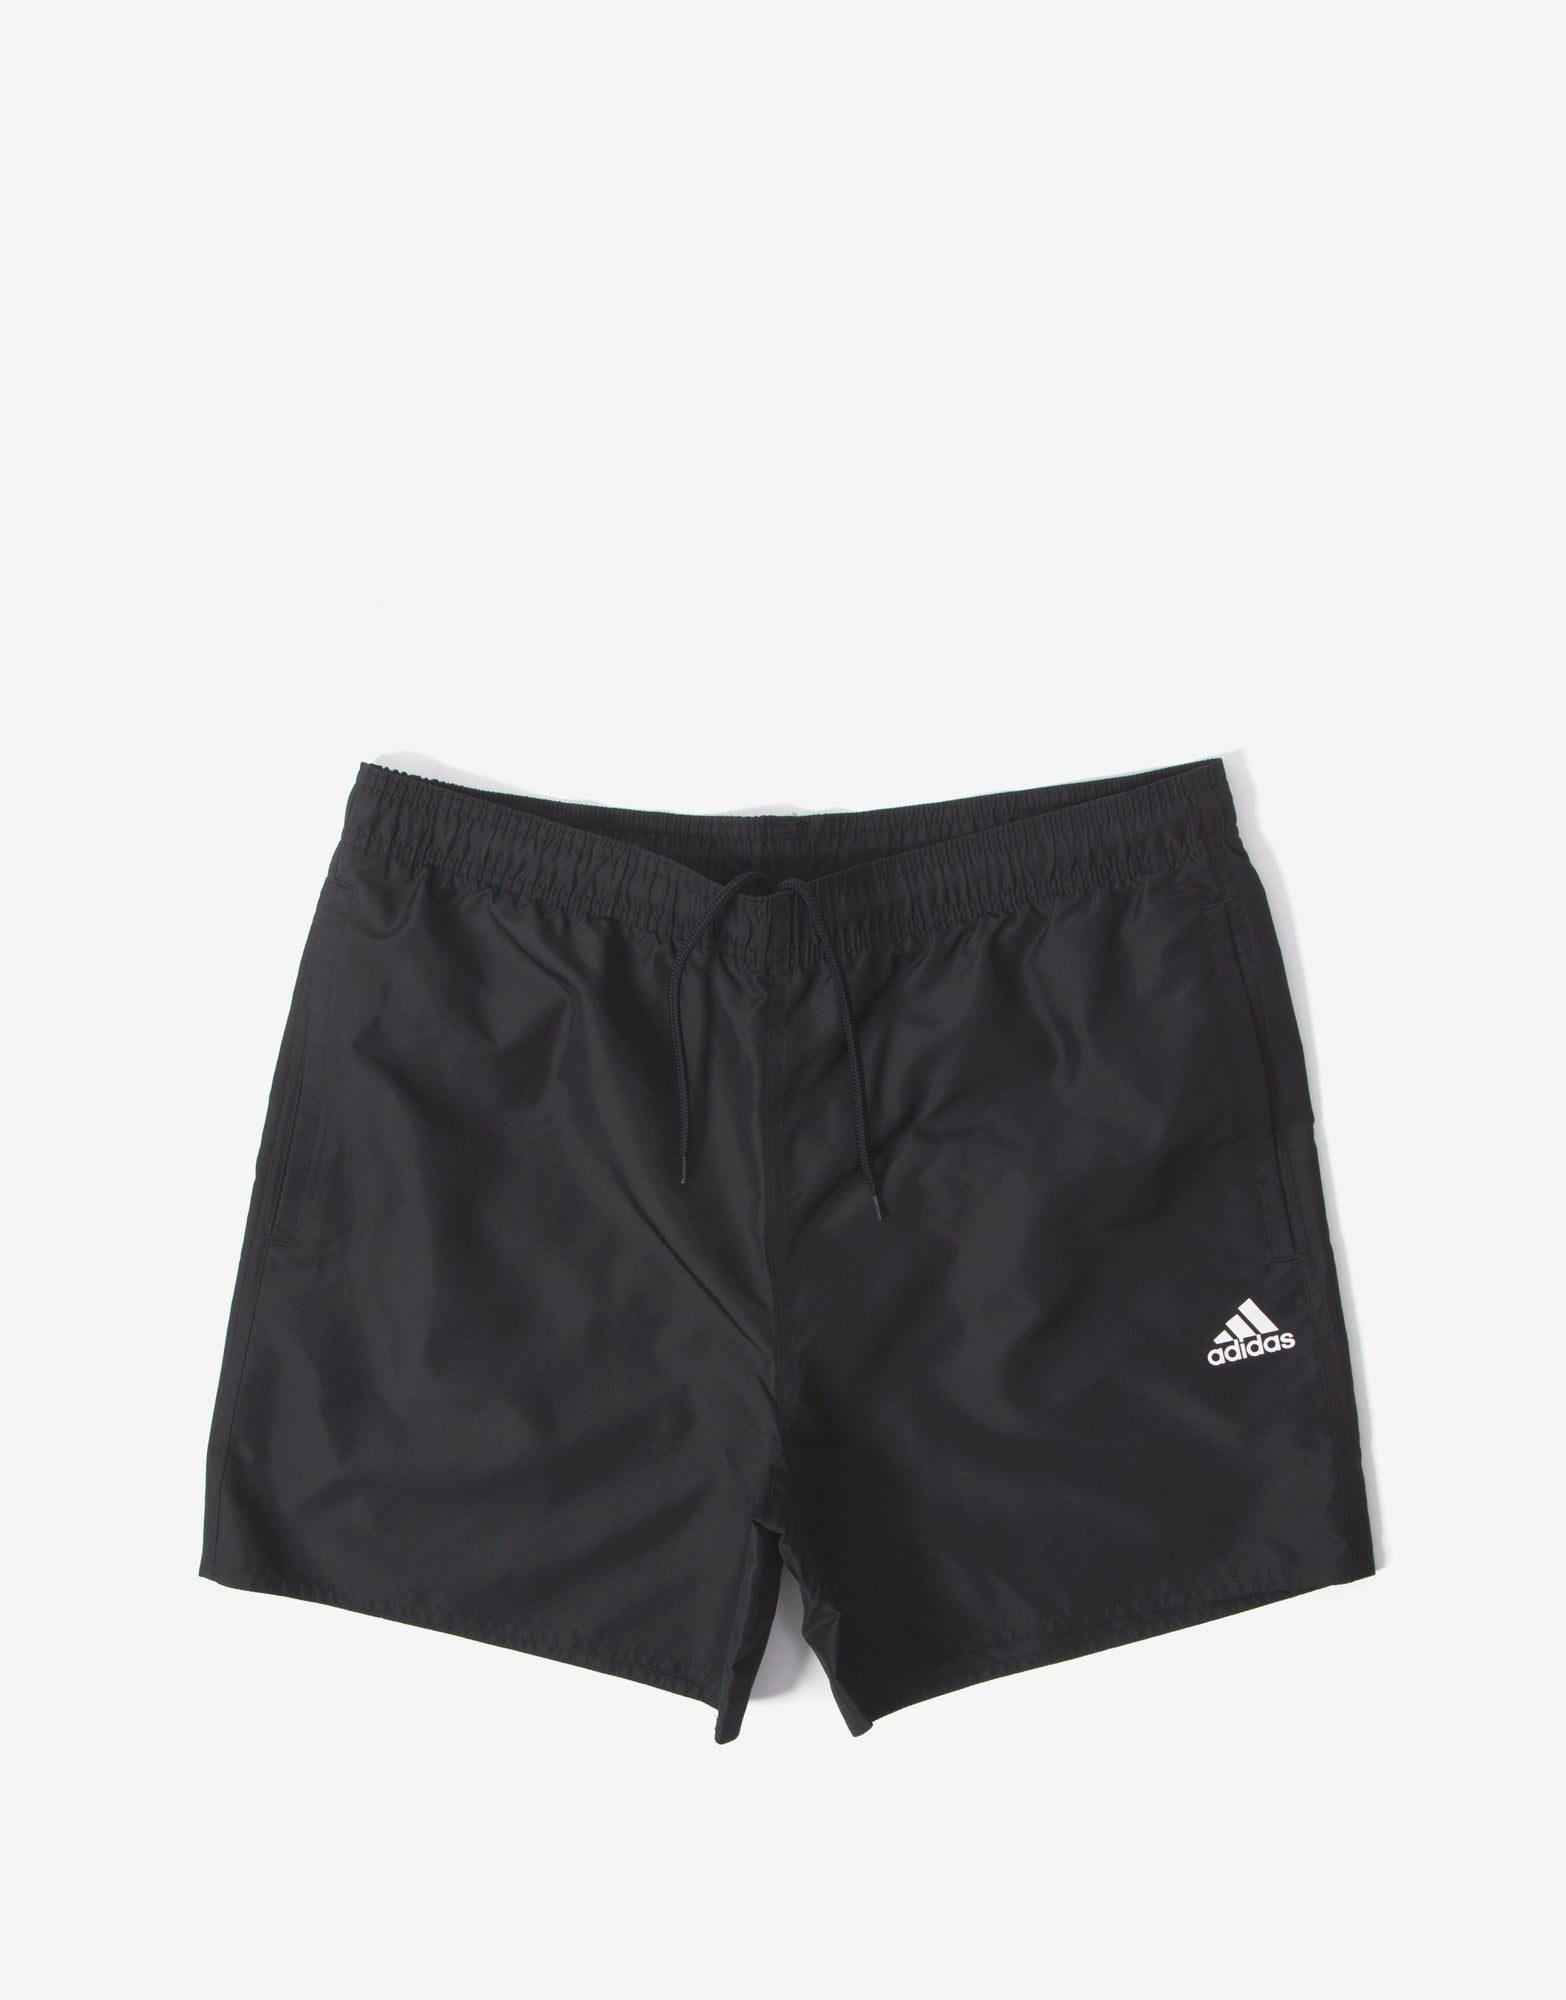 adidas CLX Solid Swim Shorts - Black